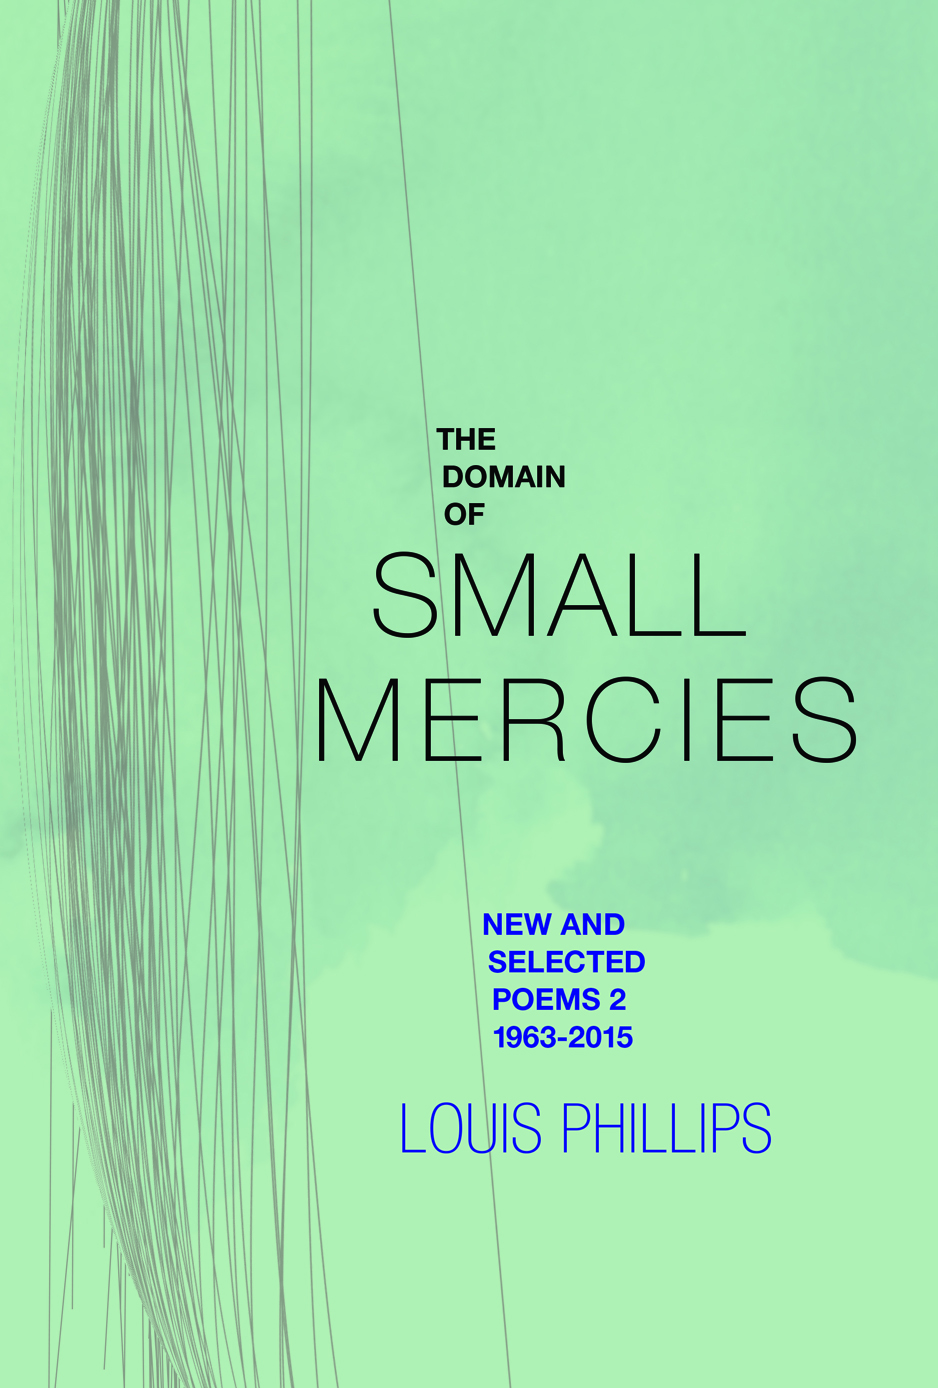 The Domain of Small Mercies: New & Selected Poems 2, 1963-2015